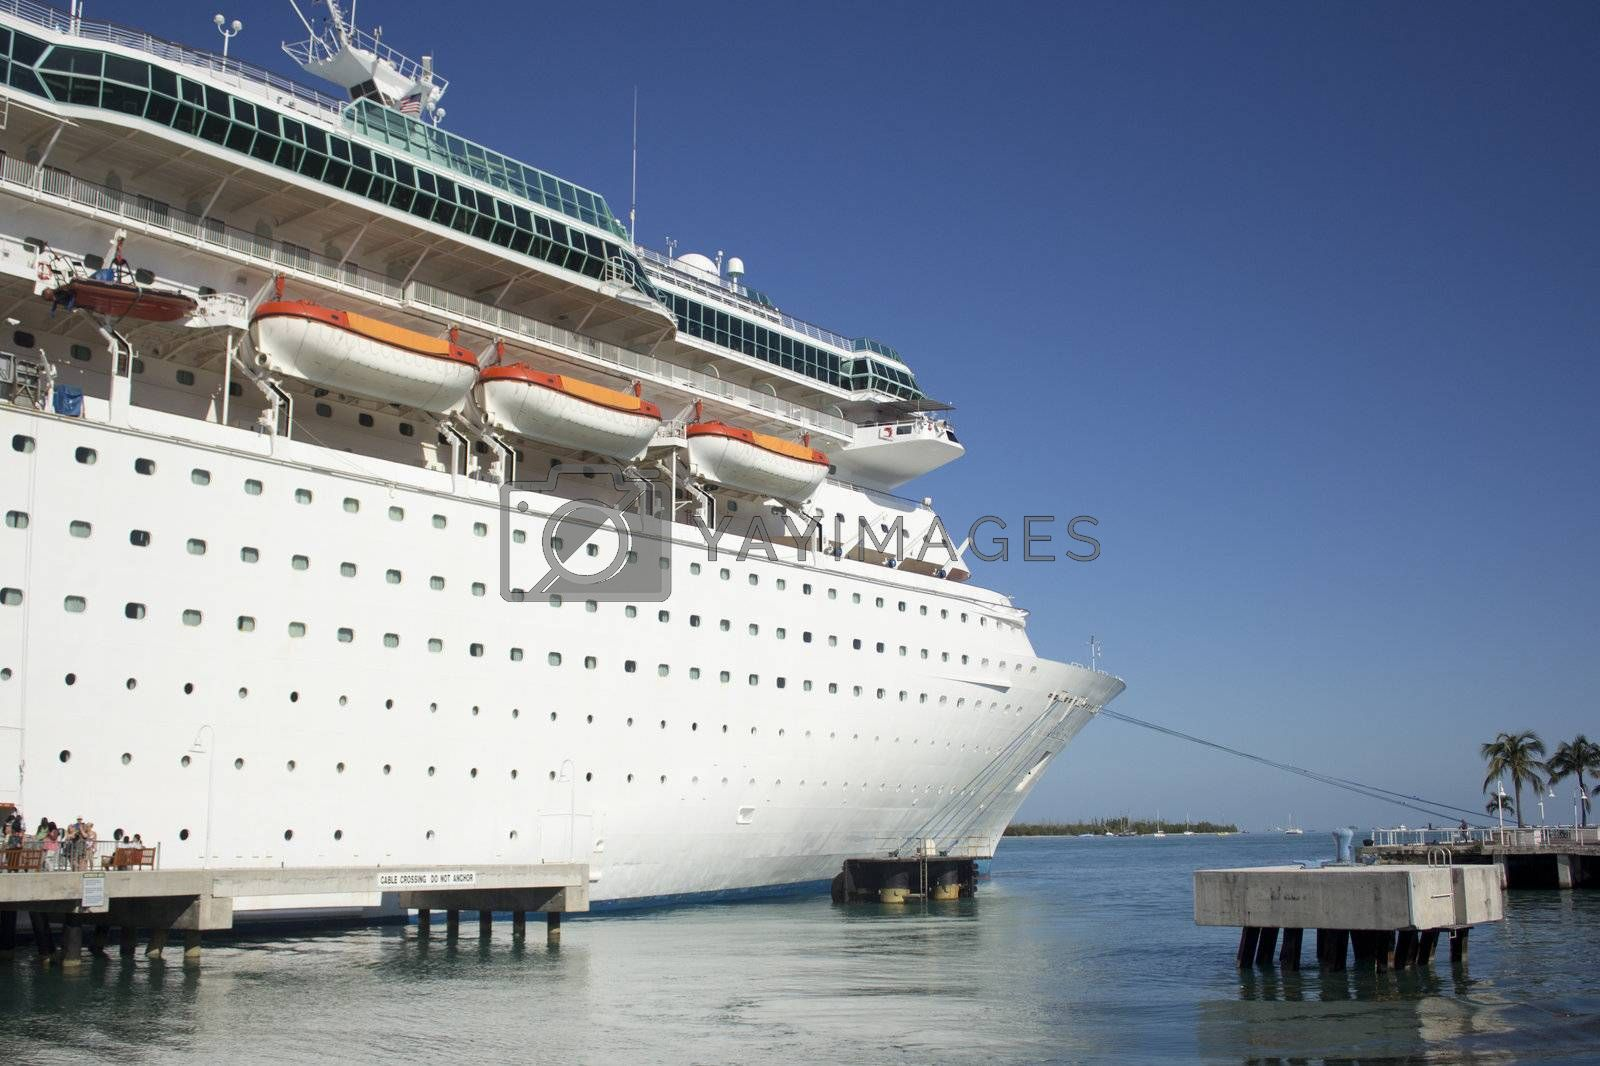 A very large cruise ship in a tropical location.